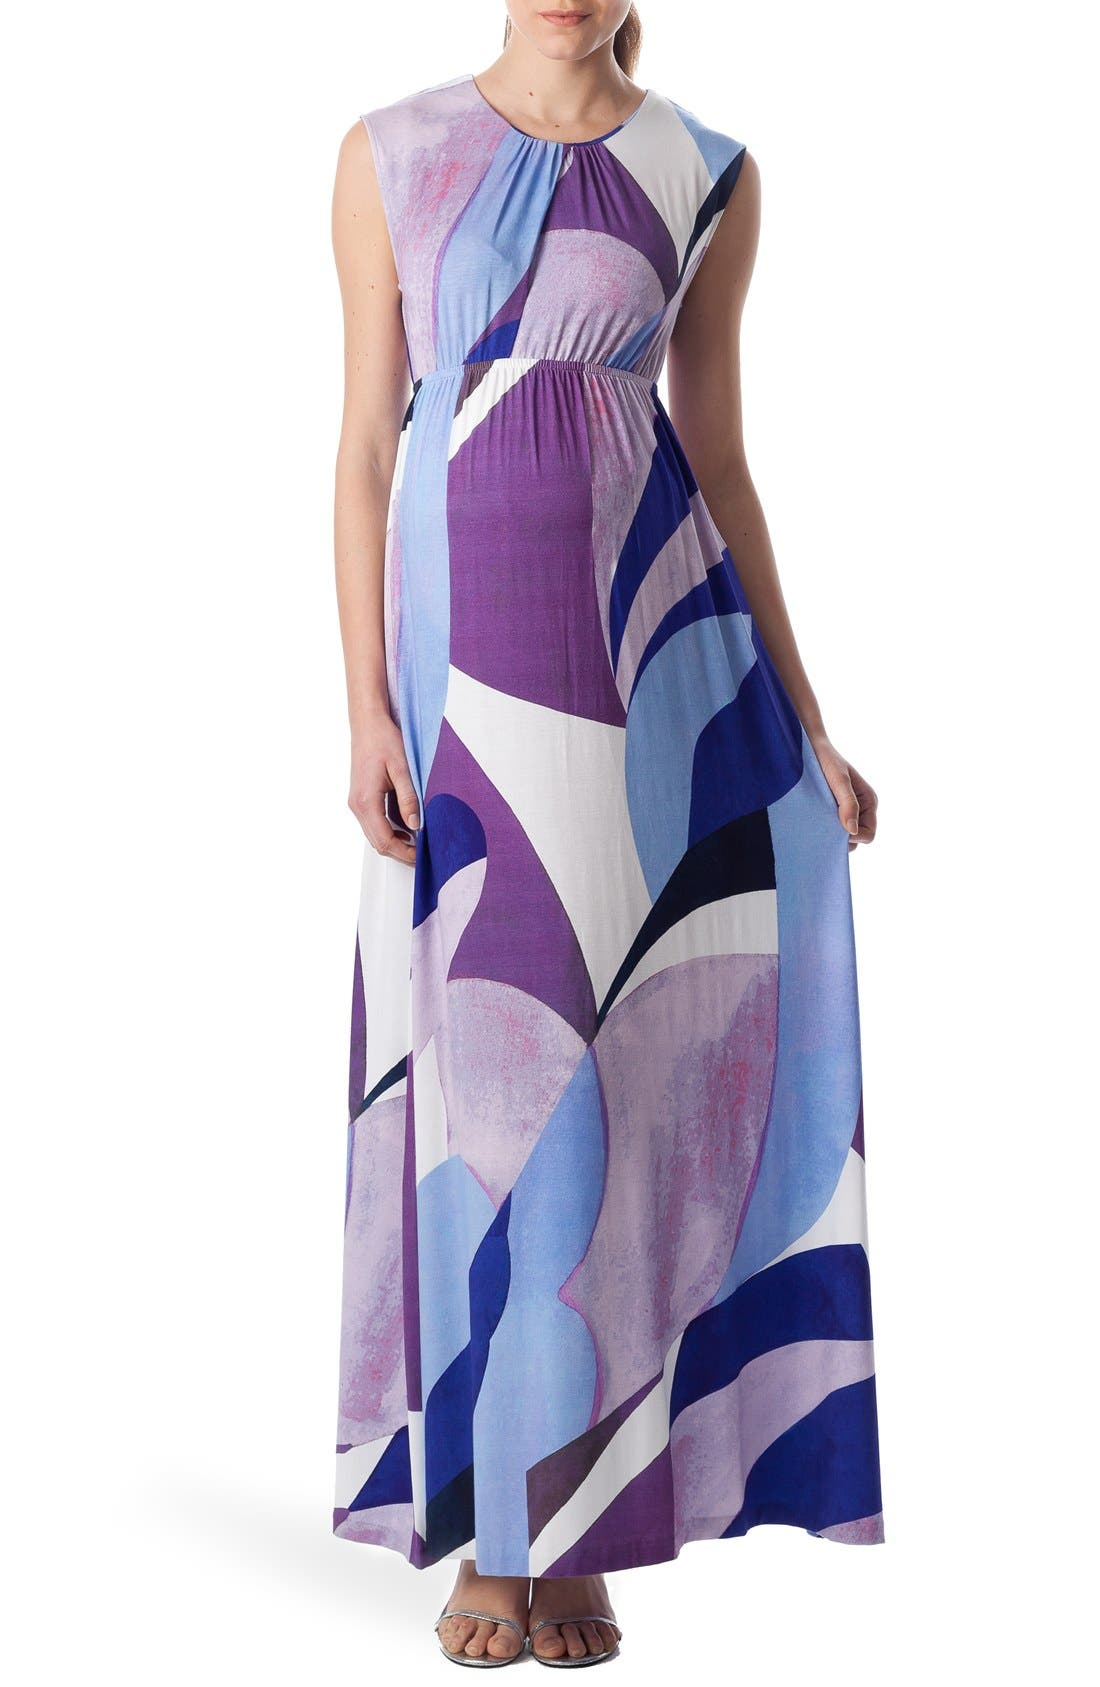 PIETRO BRUNELLI Alassio Graphic Maternity Maxi Dress